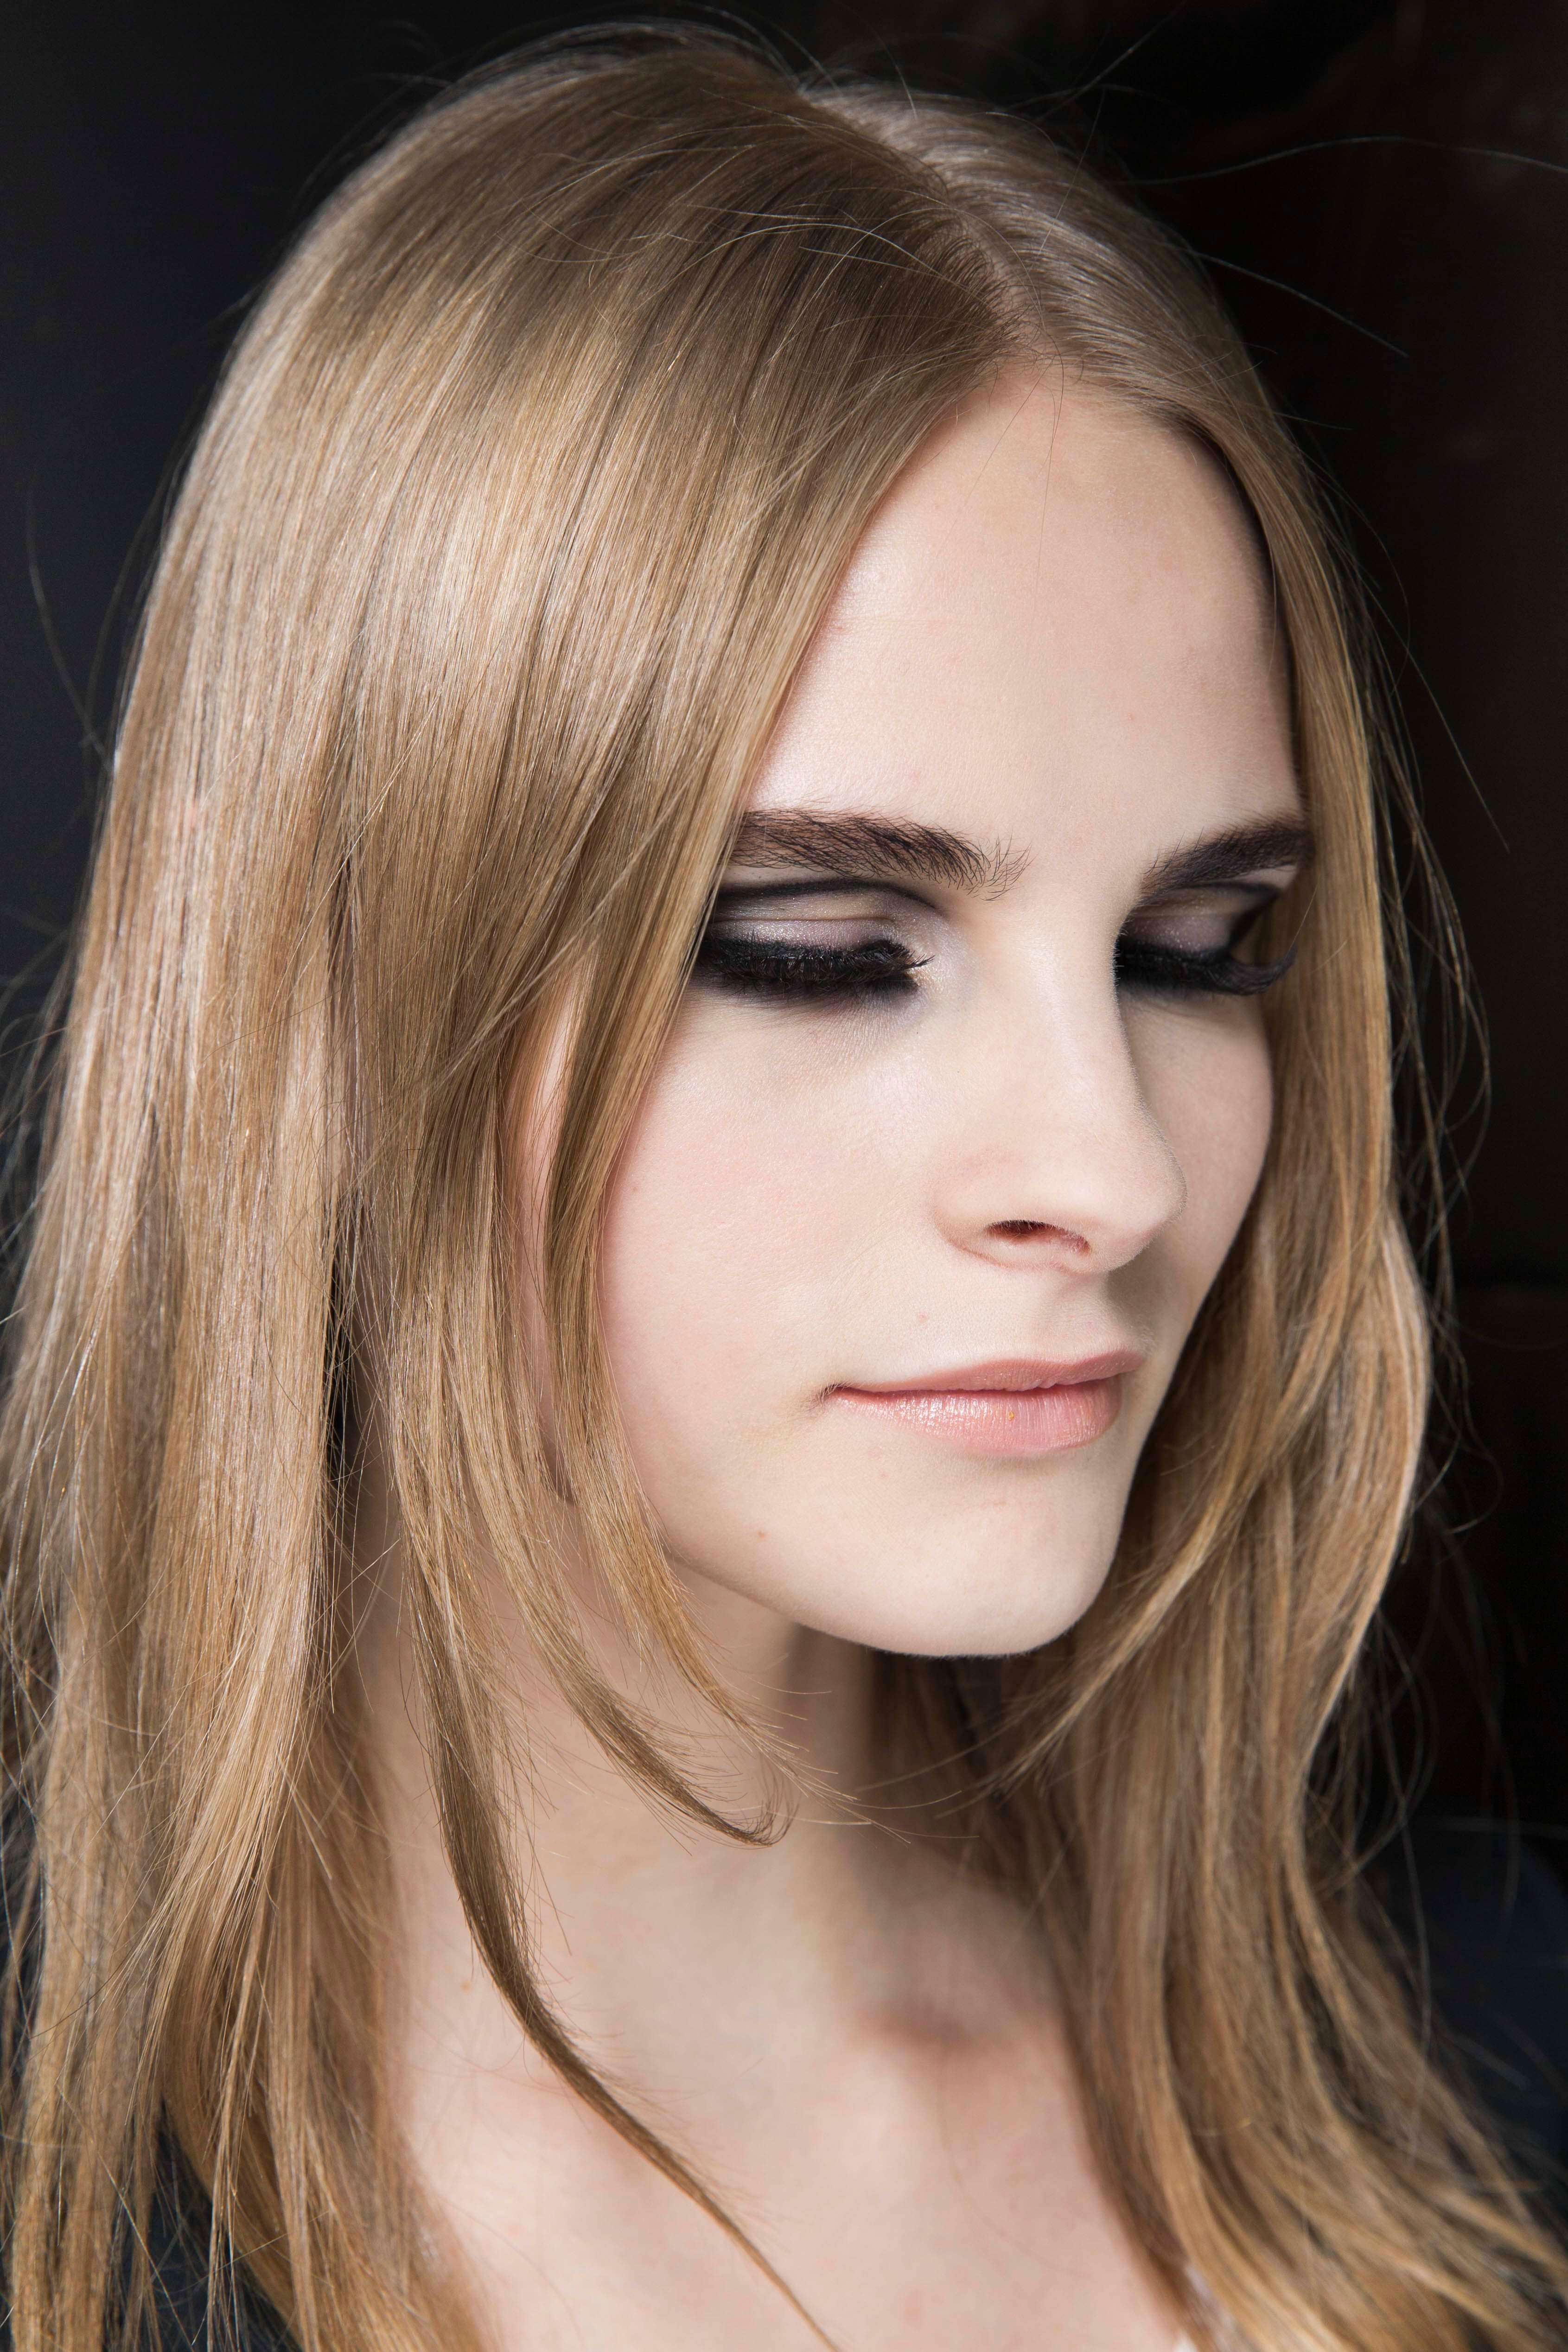 long layered haircuts: close-up of a dirty blonde model with wispy feathered layers